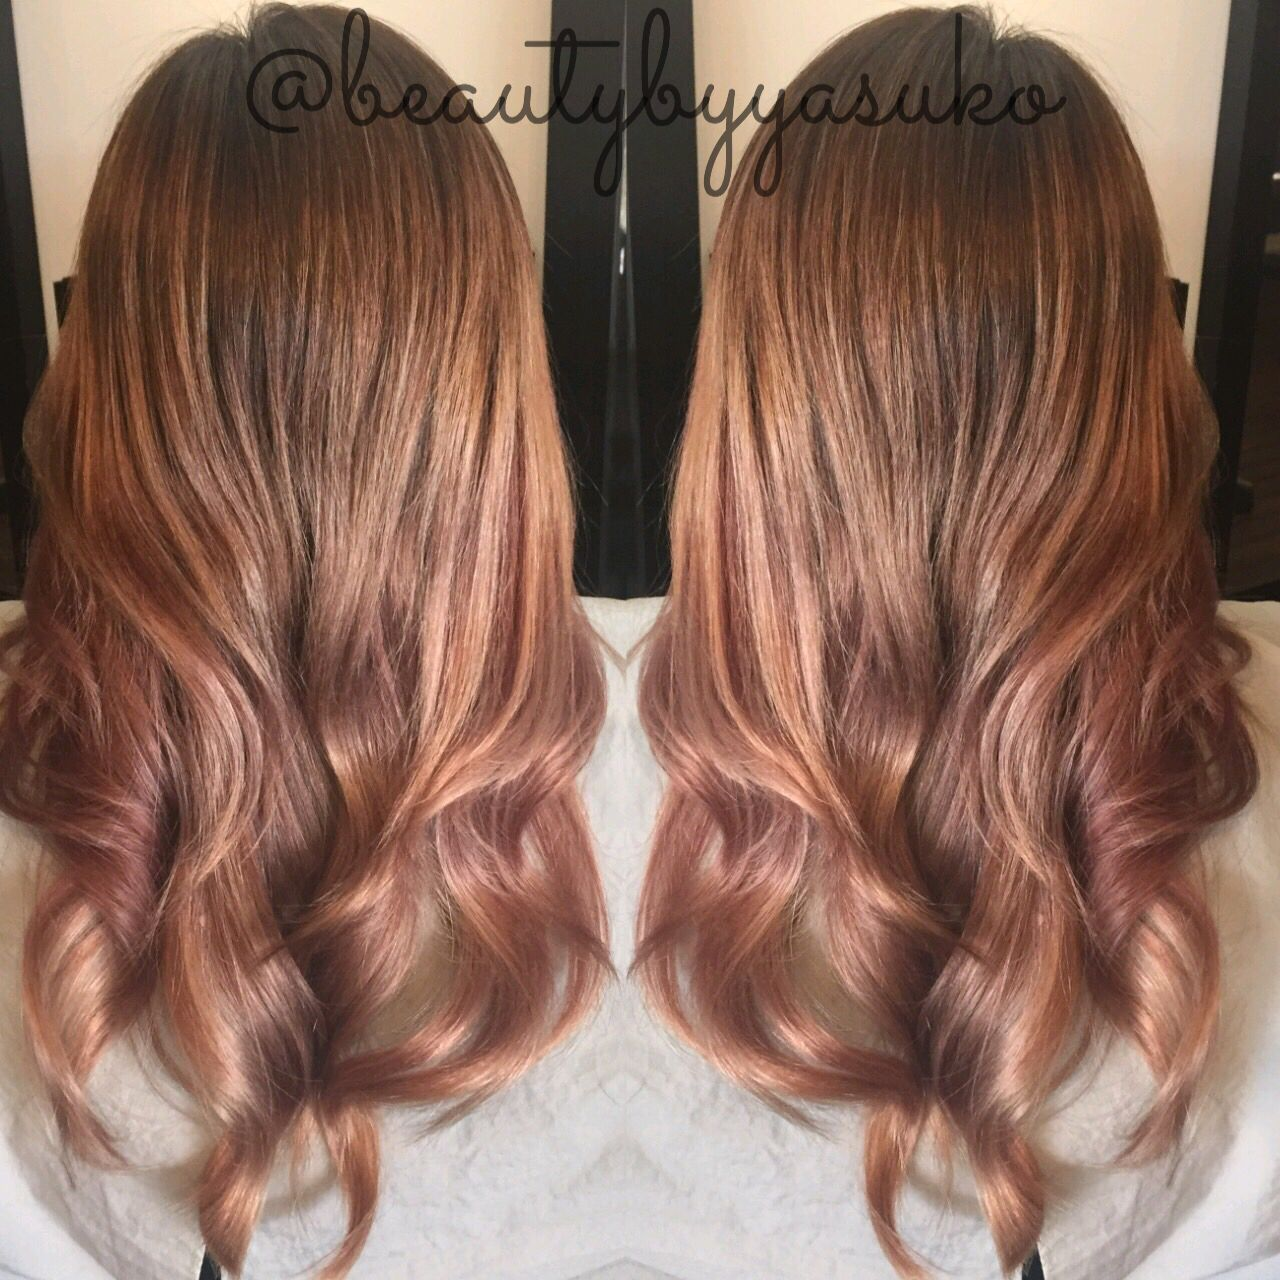 Transitioning From Rose Gold Hair To Caramel Hair Color By Beautybyyasuko